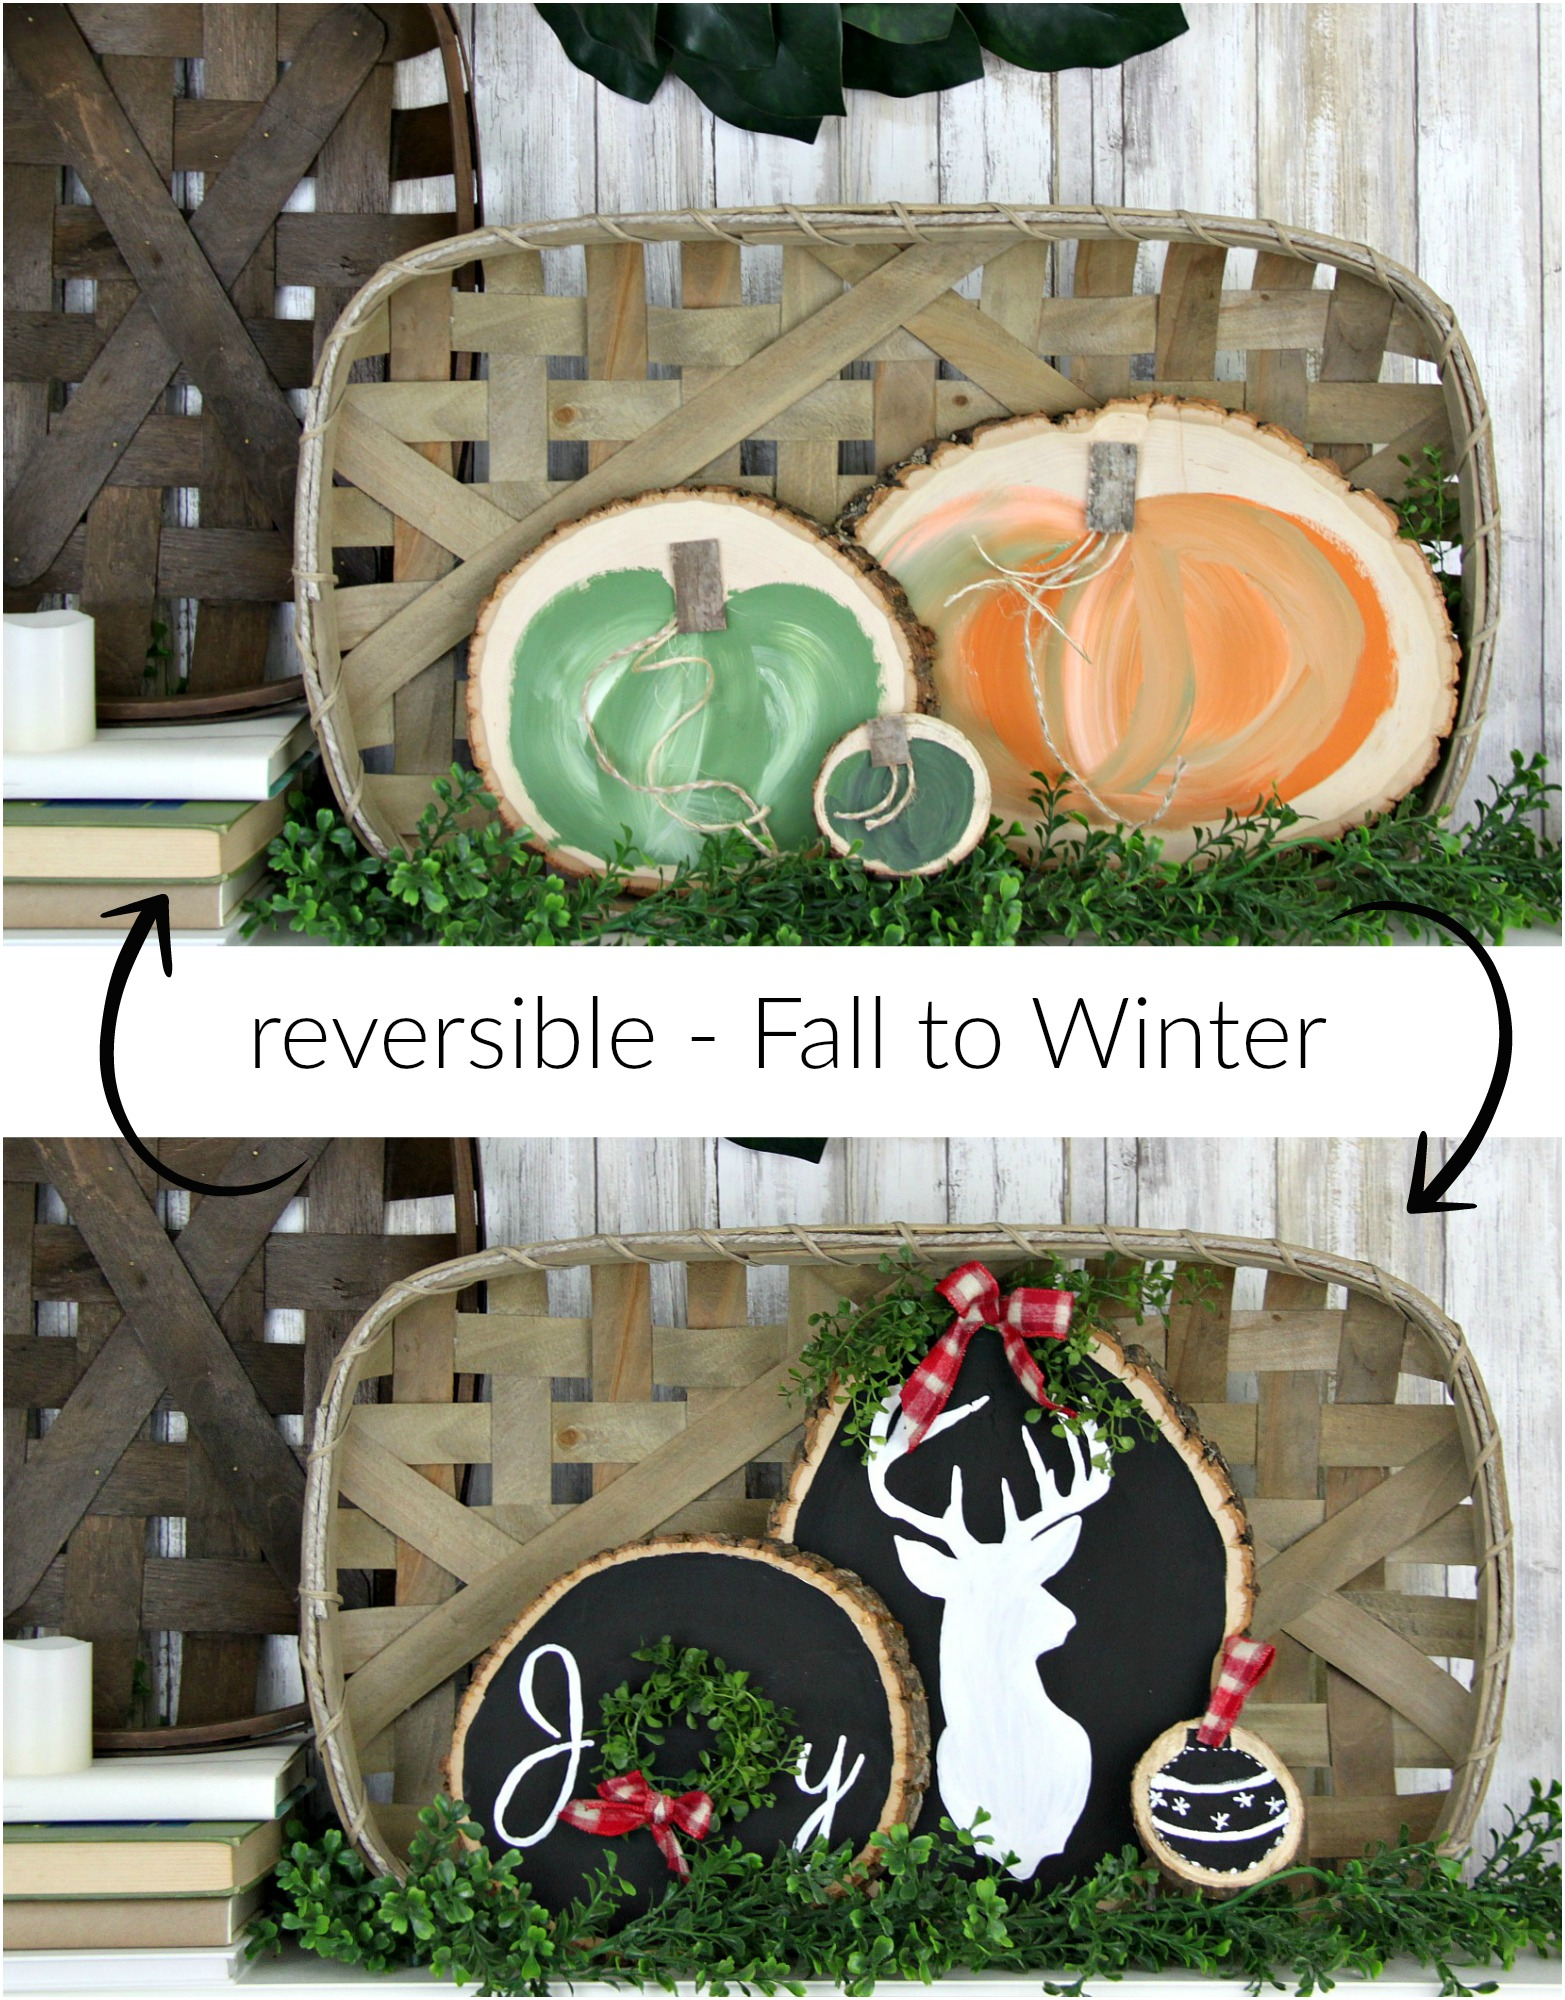 Seasonal wood round crafts transition seamlessly from fall to winter. Make your holiday craft reversible, and get two-for-one decor. Farmhouse-style fairytale pumpkins on one side and a Christmas scene on the other.